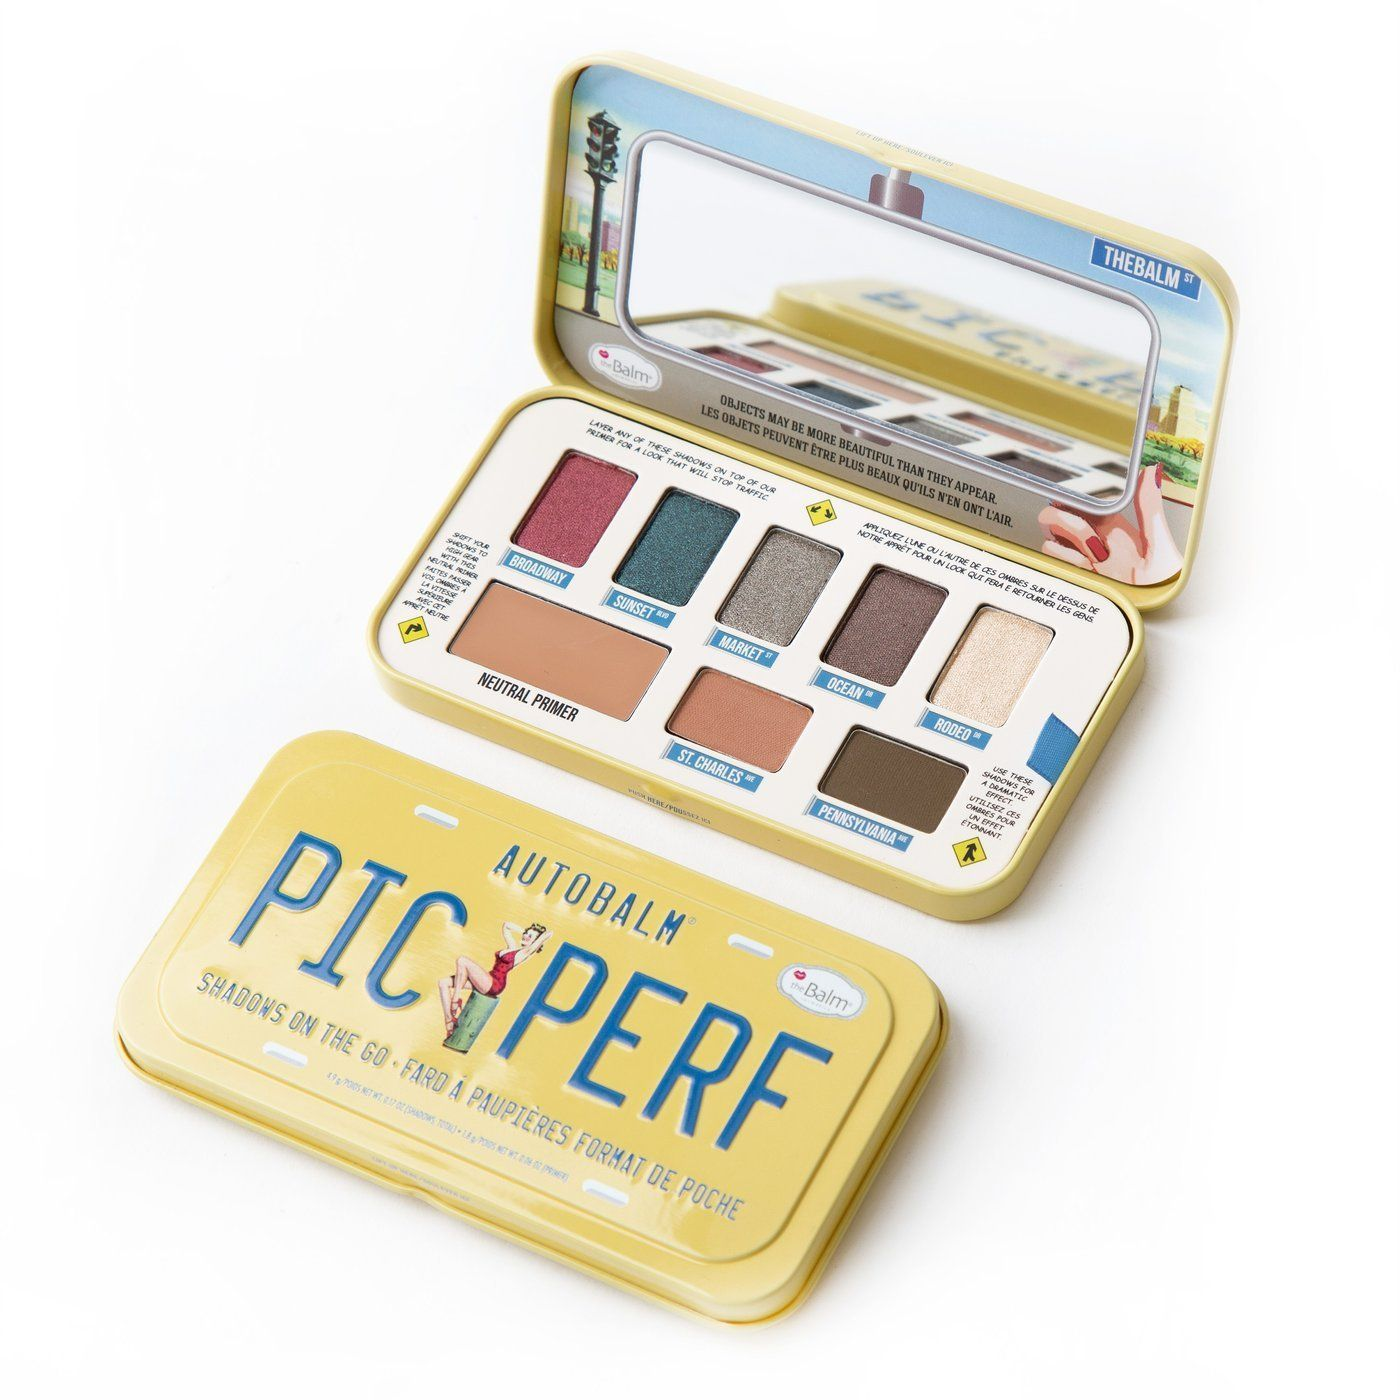 theBalm Autobalm Picture Perfect Eye Shadow Palette